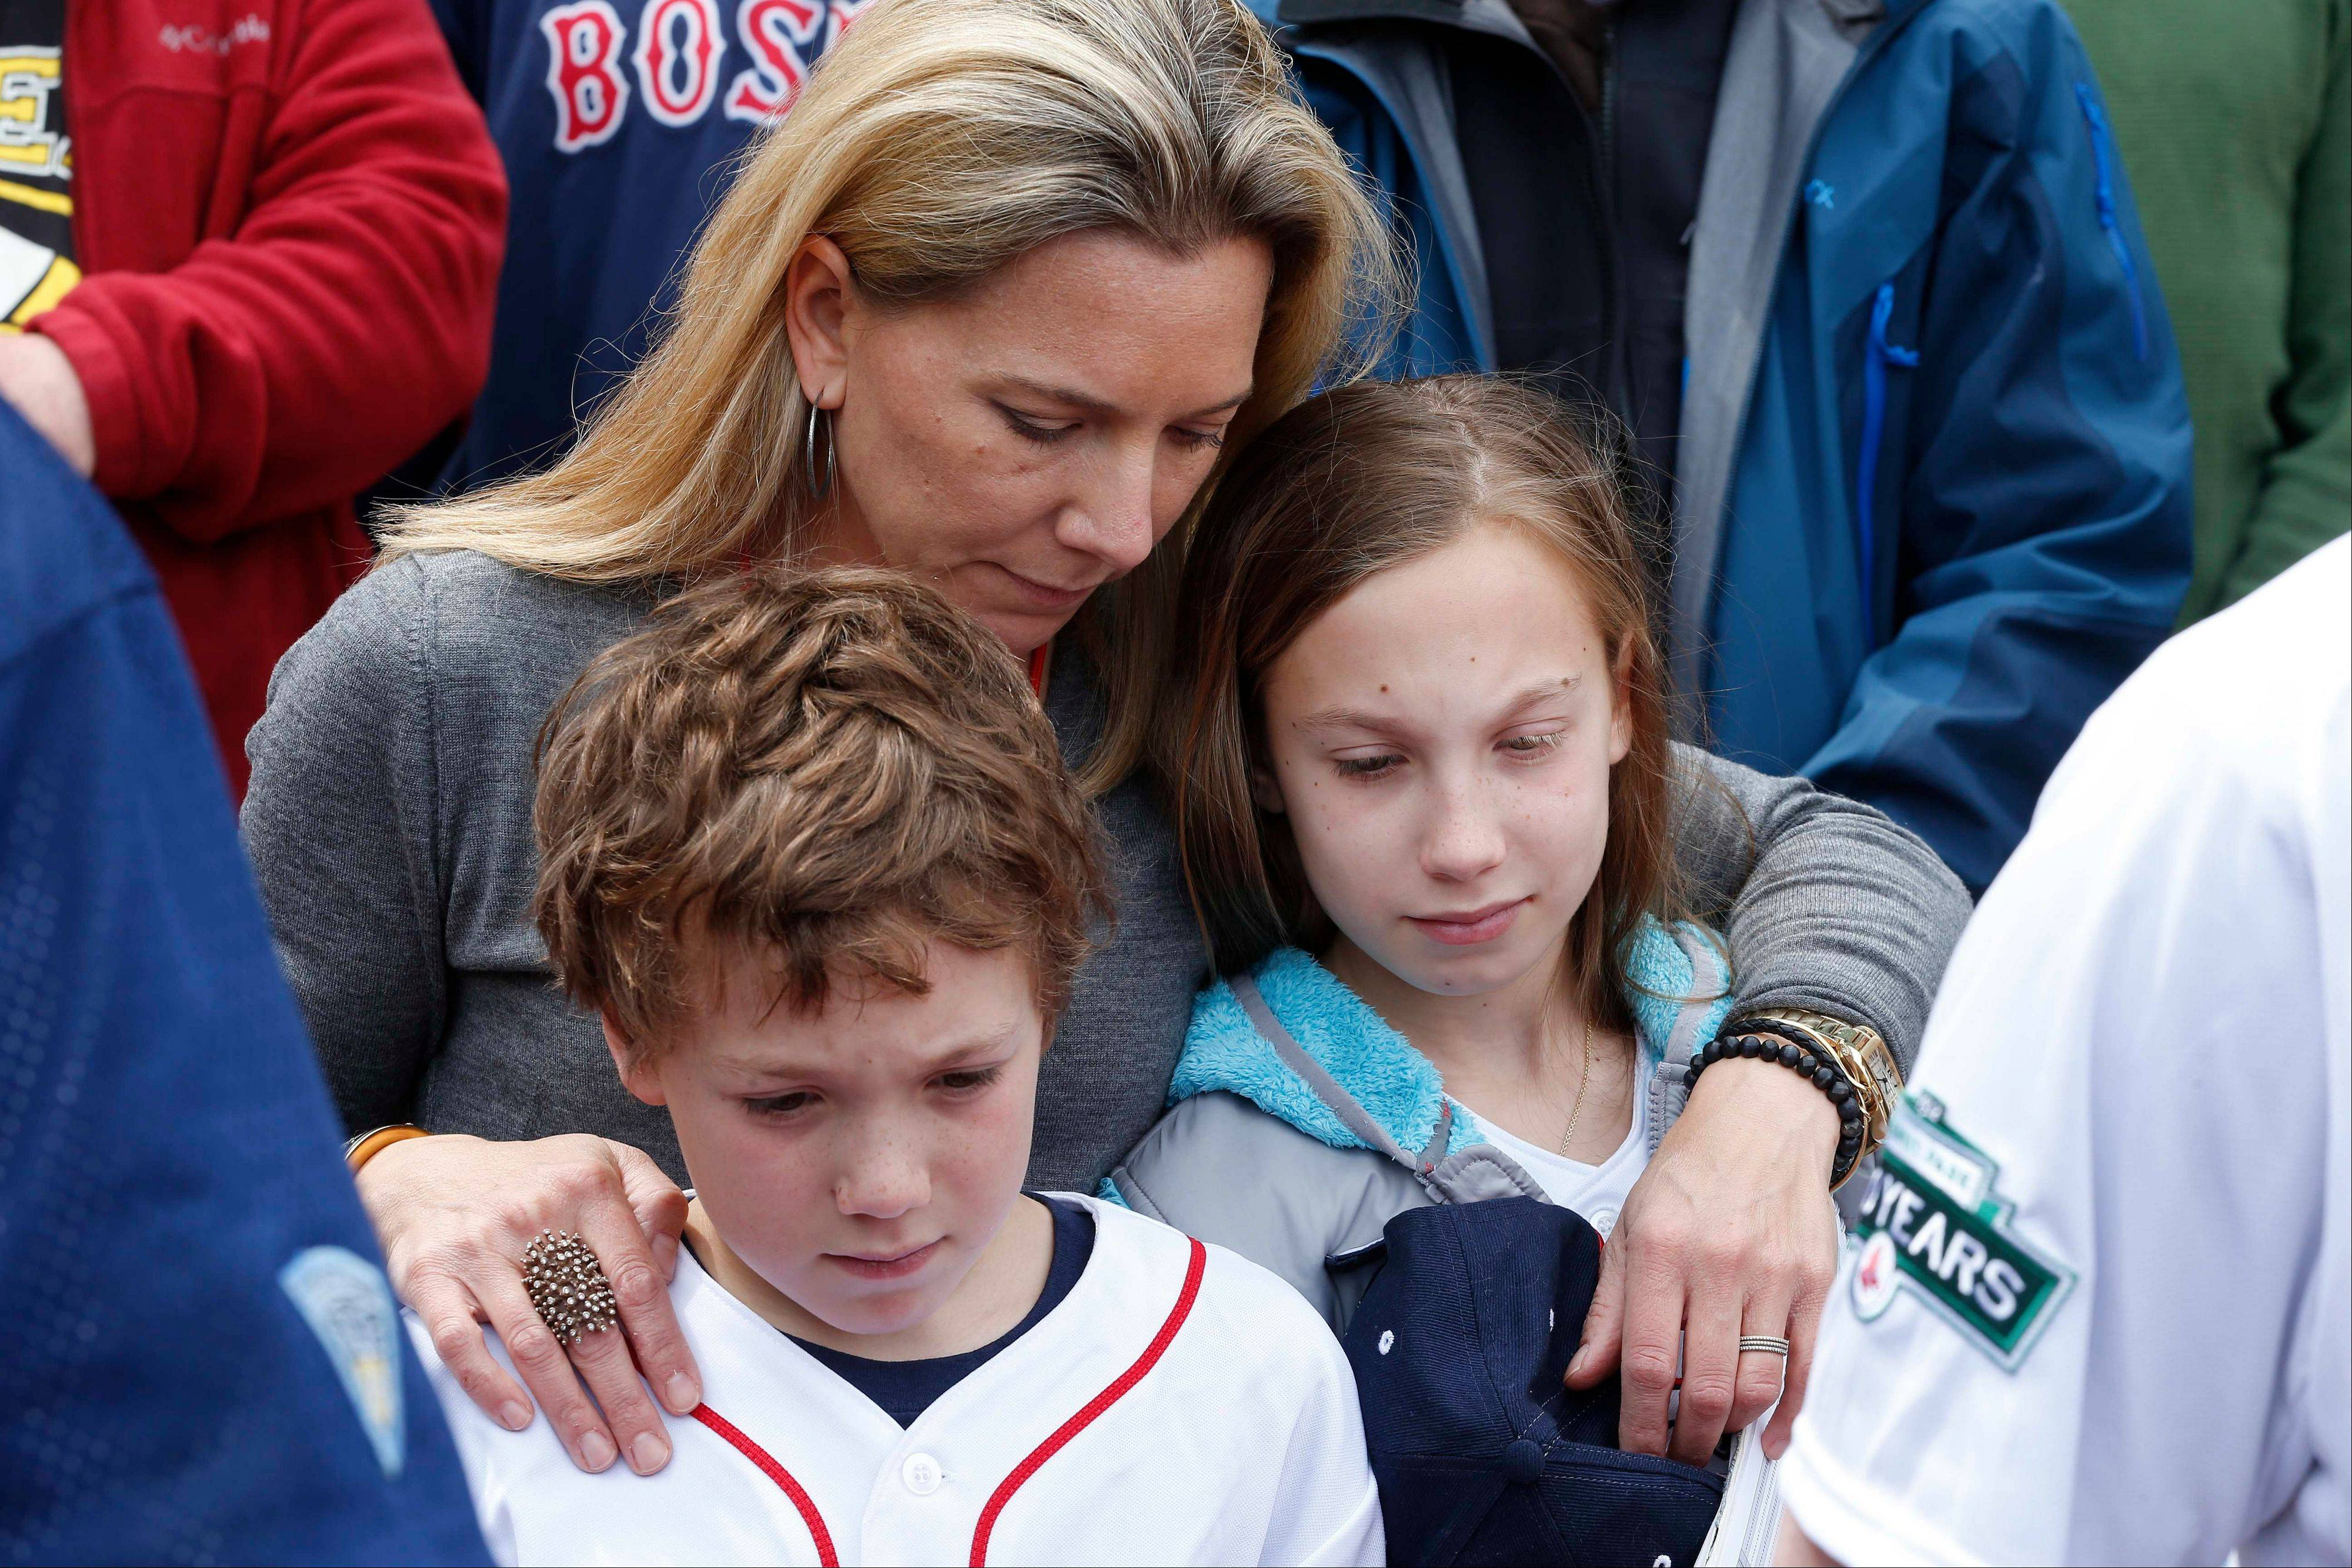 A woman bows her head between two children during a moment of silence for the victims of the Boston Marathon bombings, before a baseball game between the Boston Red Sox and the Kansas City Royals in Boston, Saturday, April 20, 2013.